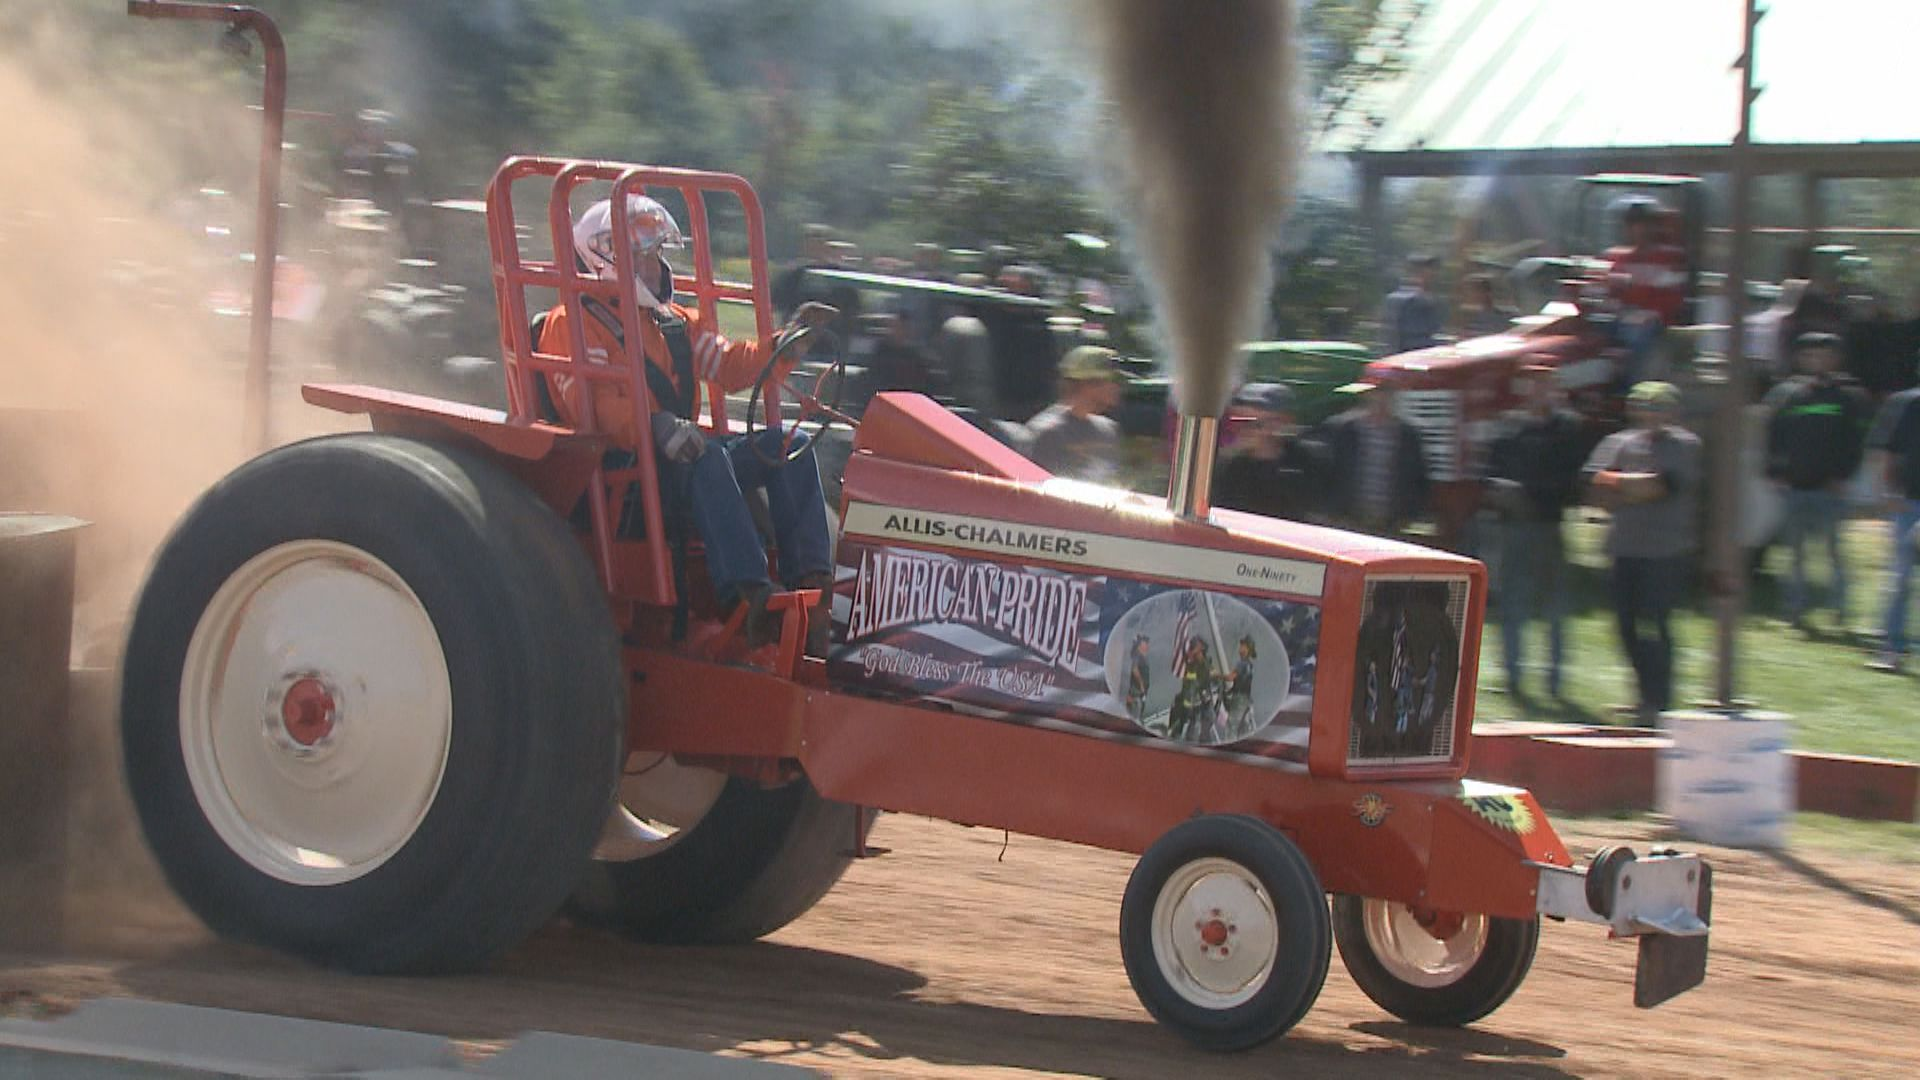 Whether you're tilling the soil to plant a springtime garden or getting ready to clear the land for your new home, a tractor is definitely a handy piece of equipment to own. More Than 100 Participate In Annual Willow Springs Garden Truck And Tractor Pull